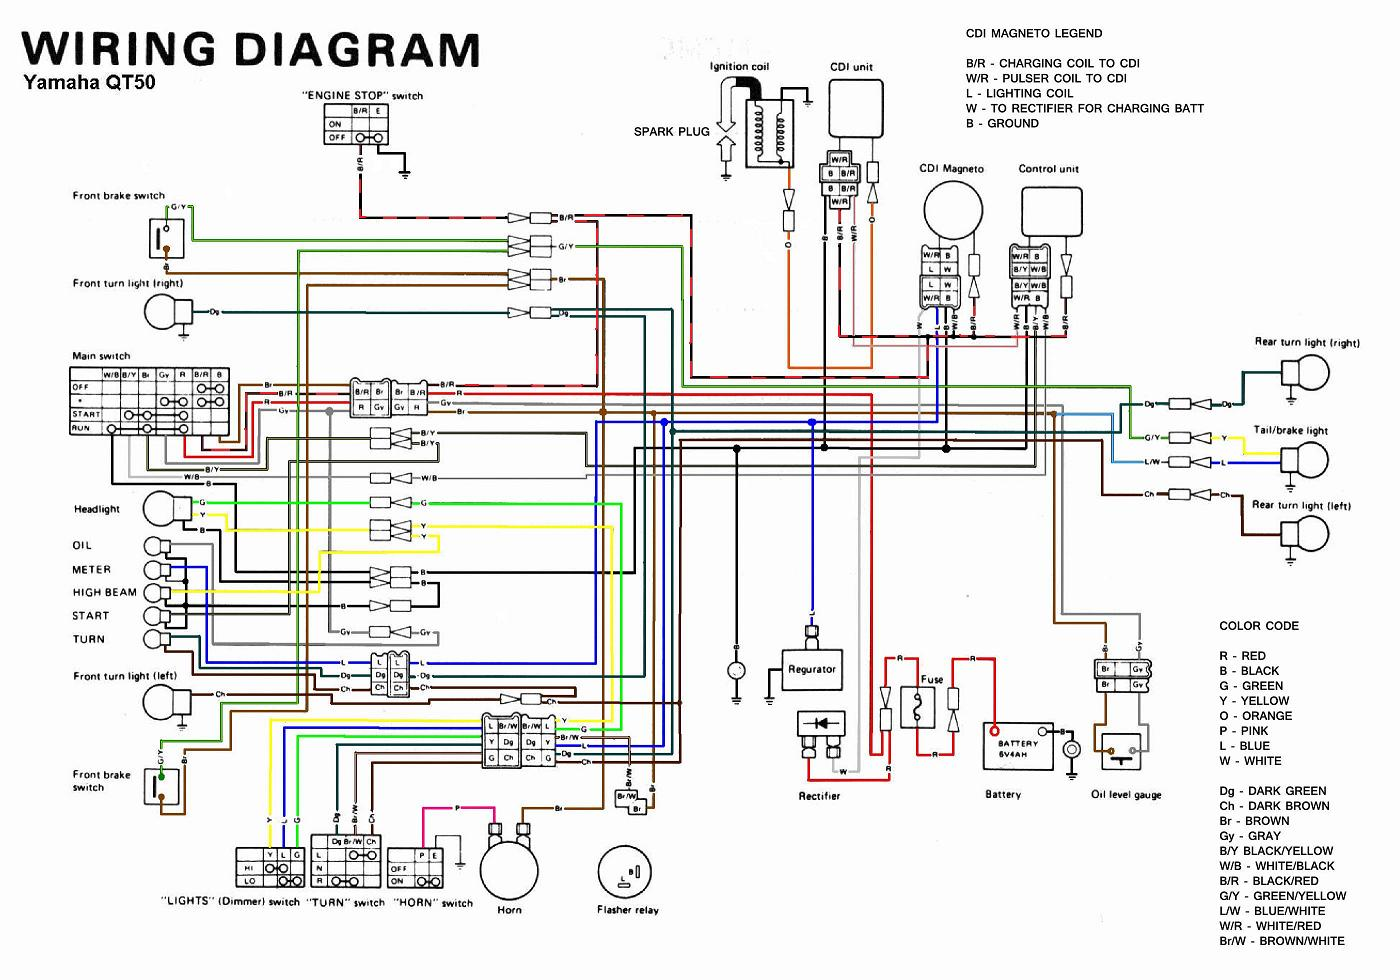 Kawasaki 250 Atv Wiring Diagram Opinions About 220 Engine Yamaha Qt50 Luvin And Other Nopeds Bayou Schematic 185